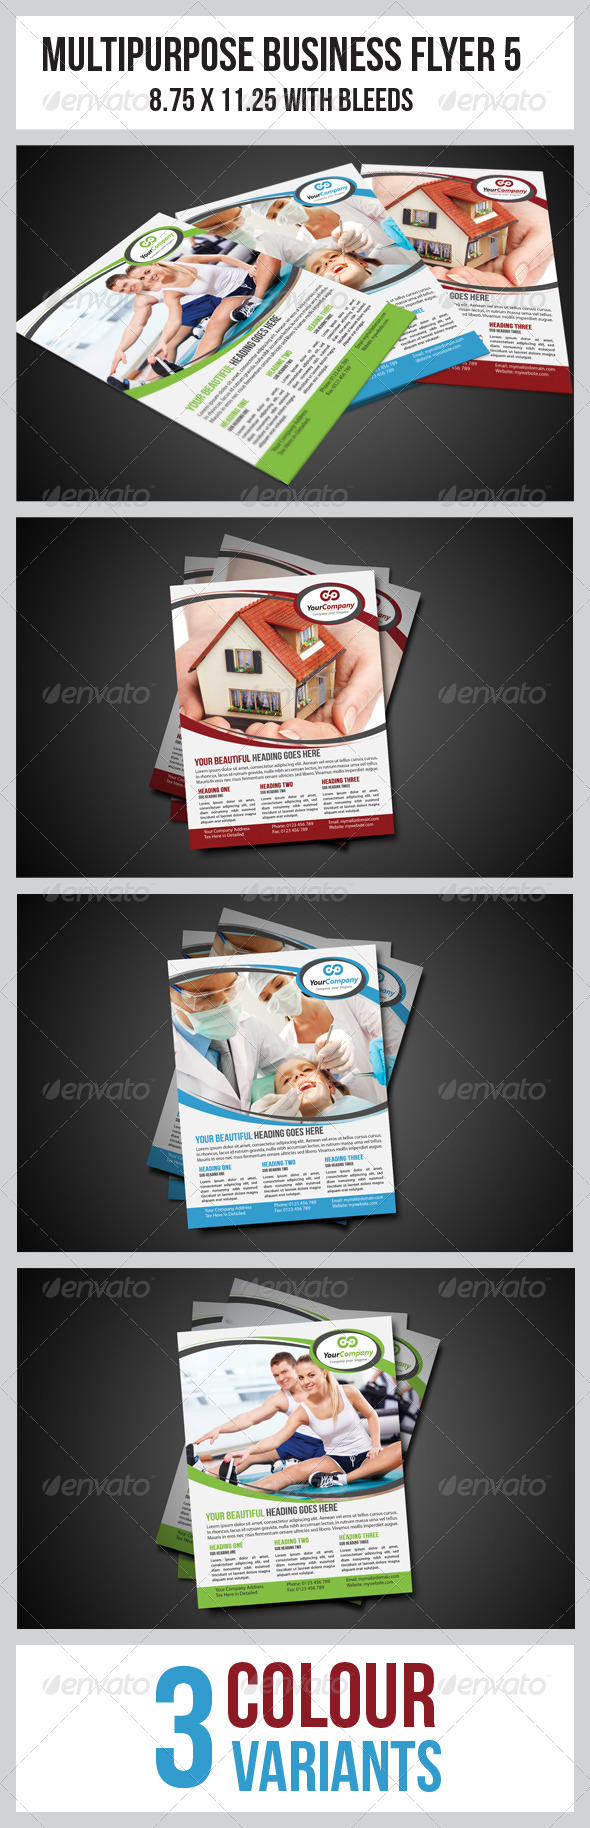 Multipurpose Business Flyer 5 - Corporate Flyers